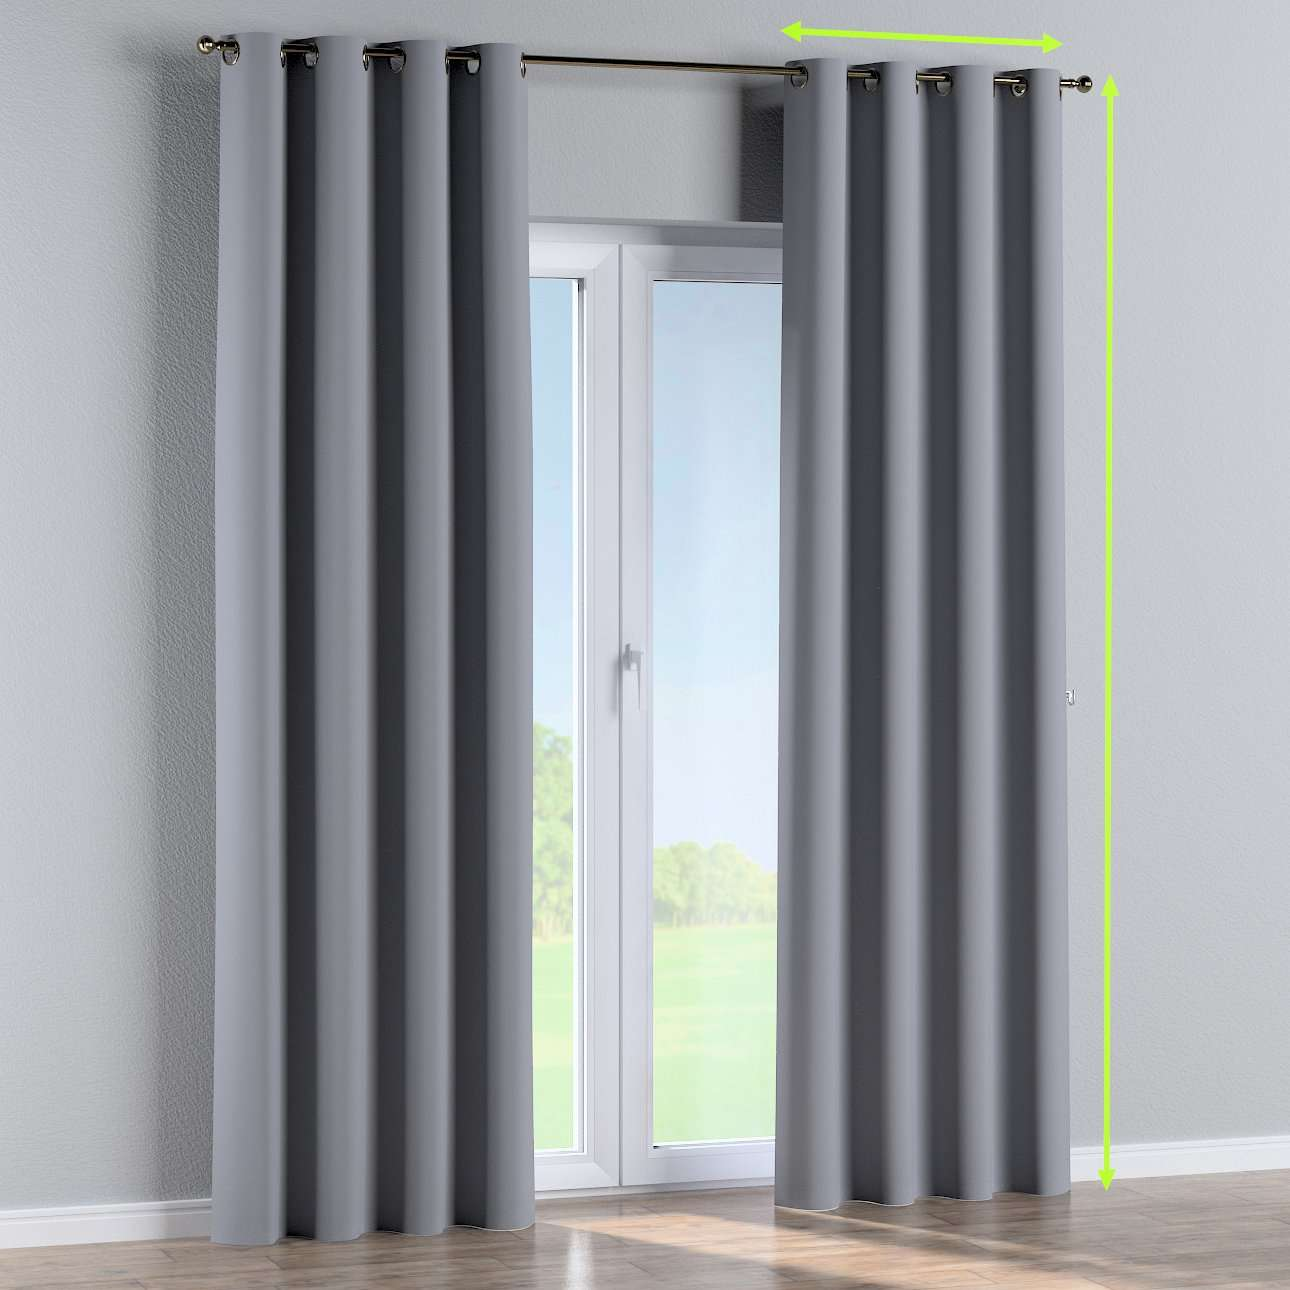 Blackout eyelet curtain in collection Blackout, fabric: 269-96